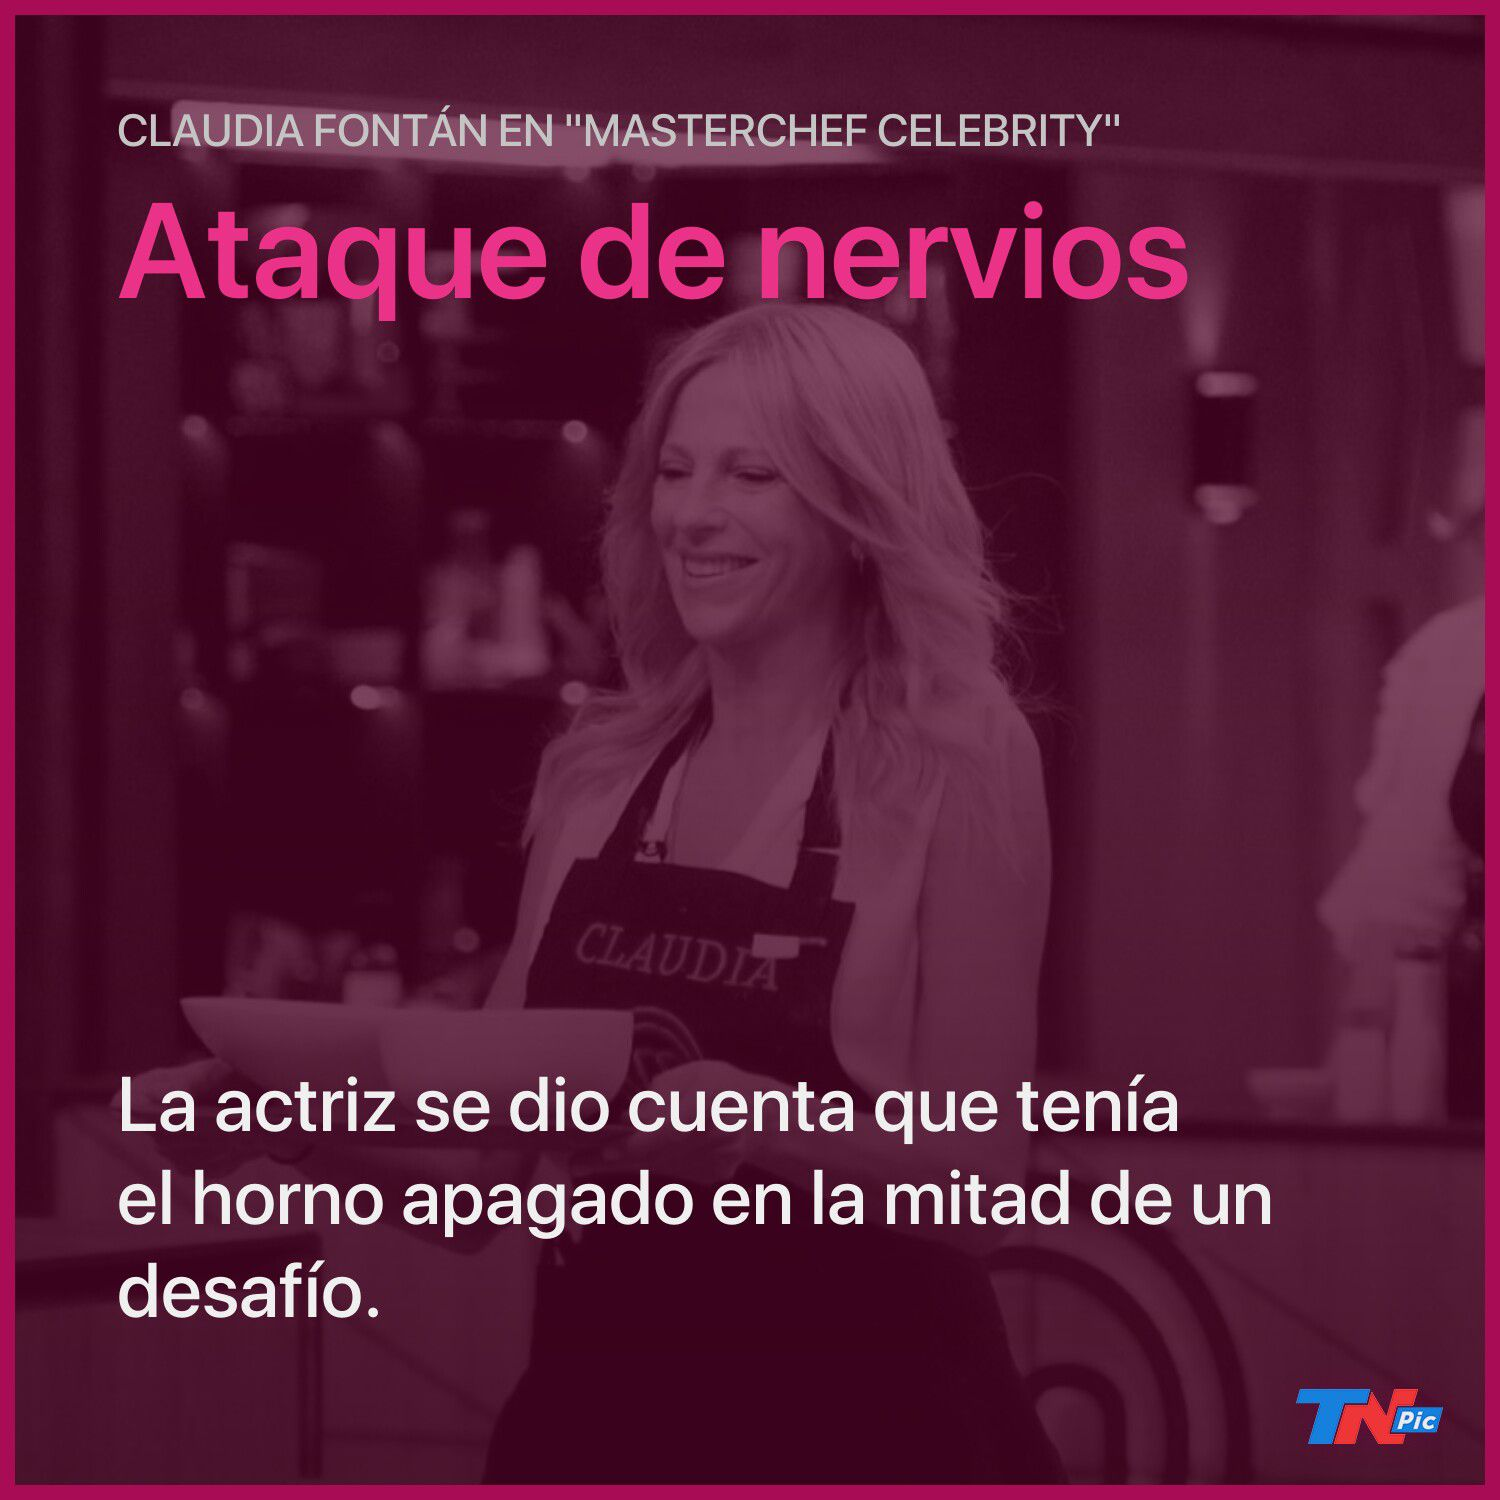 """masterchef-celebrity"":-claudia-fontan-cometio-un-error-y-se-largo-a-llorar-desconsoladamente"